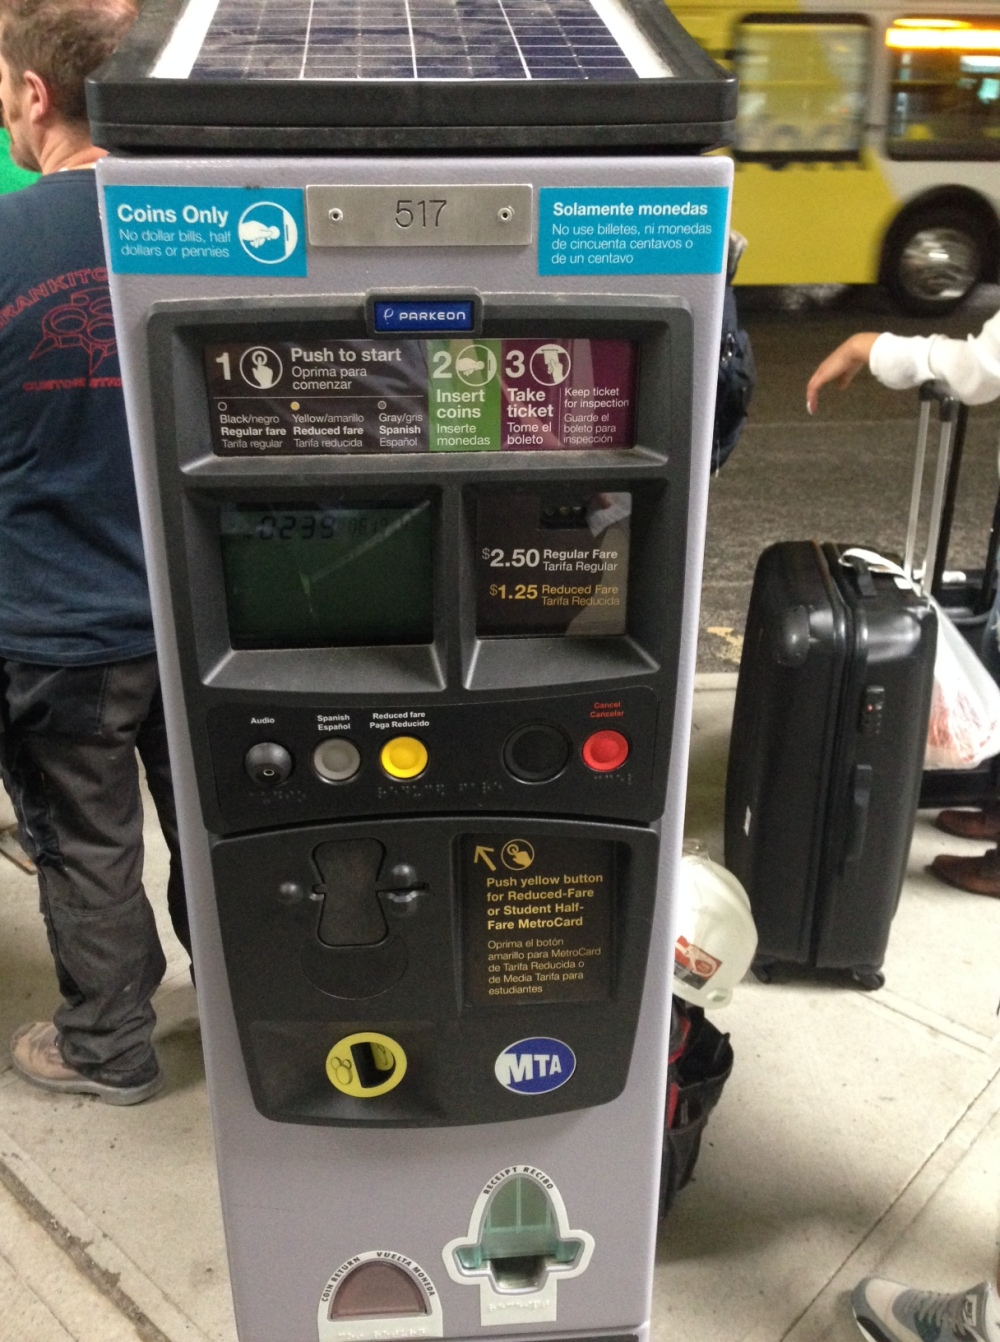 This is a pre-pay bus kiosk in New York.